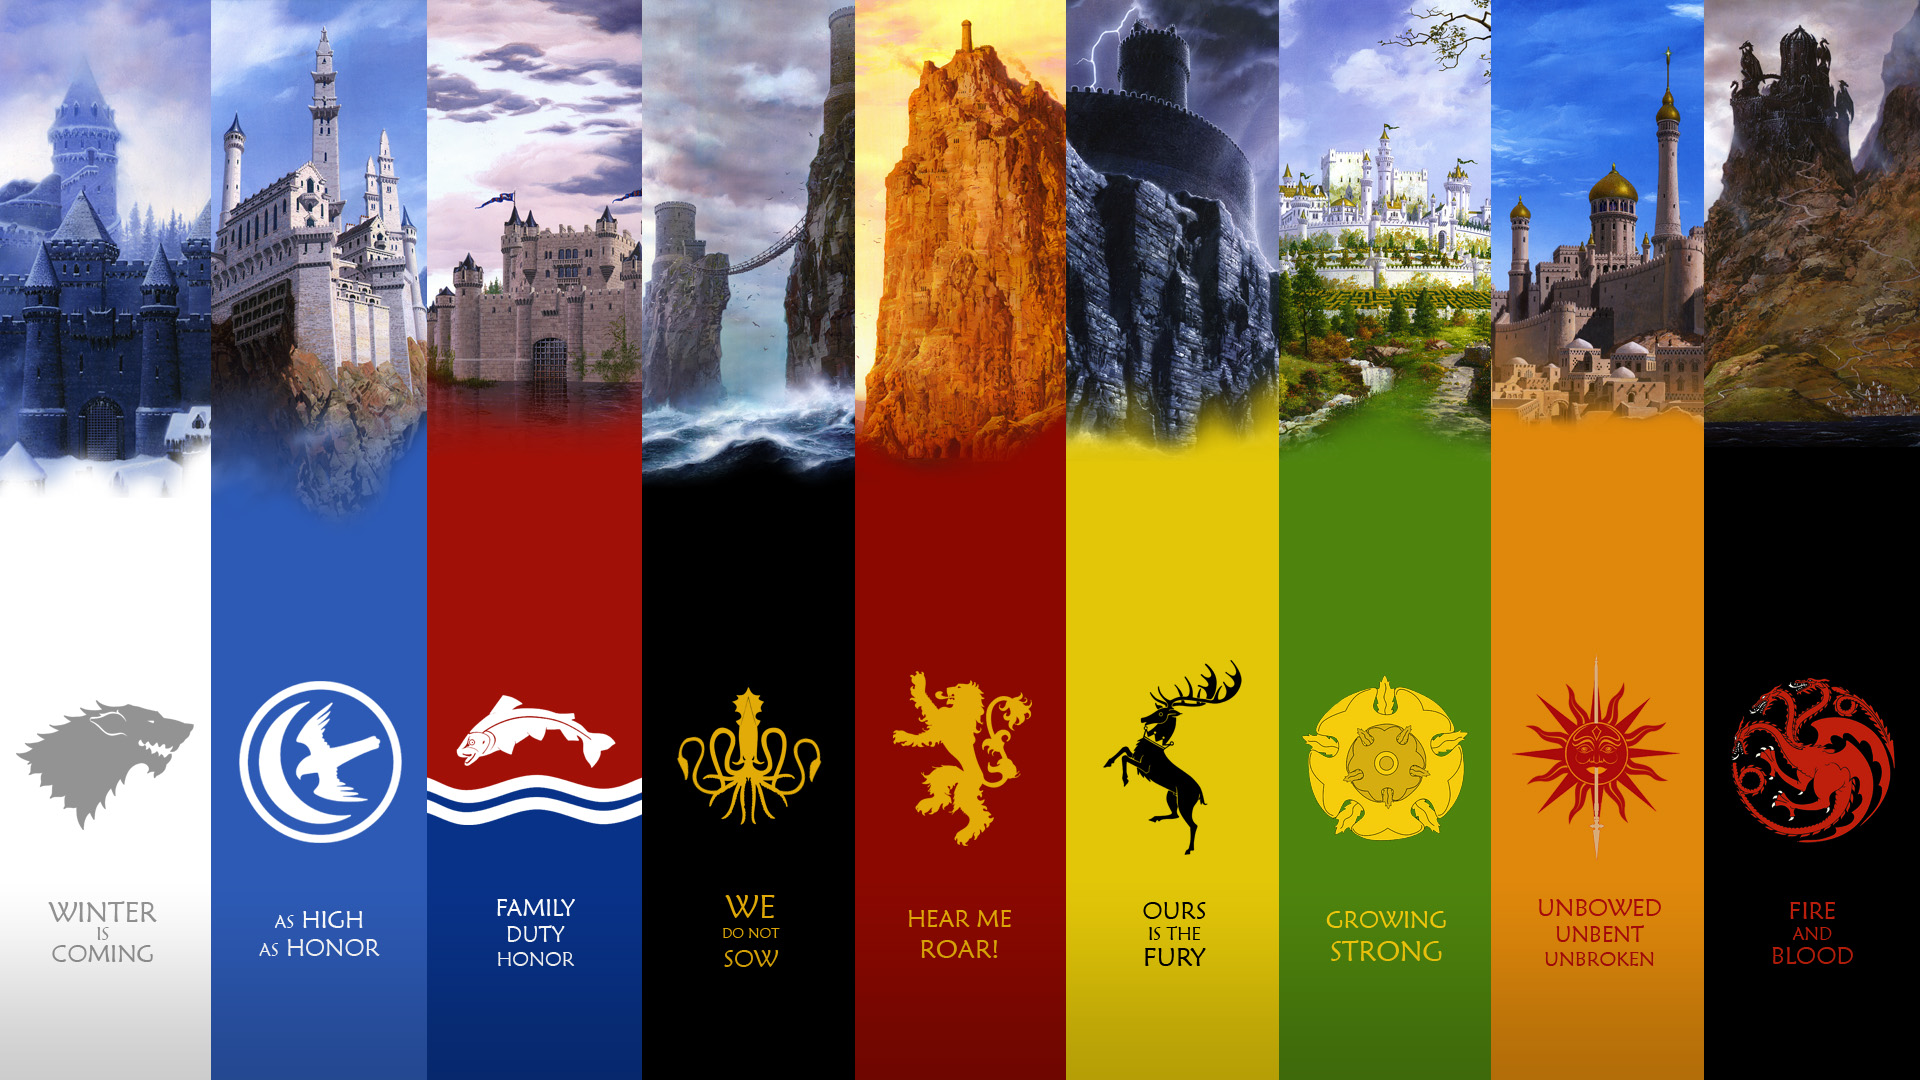 HD A Song Of Ice And Fire Wallpapers and Photos HD 1920x1080